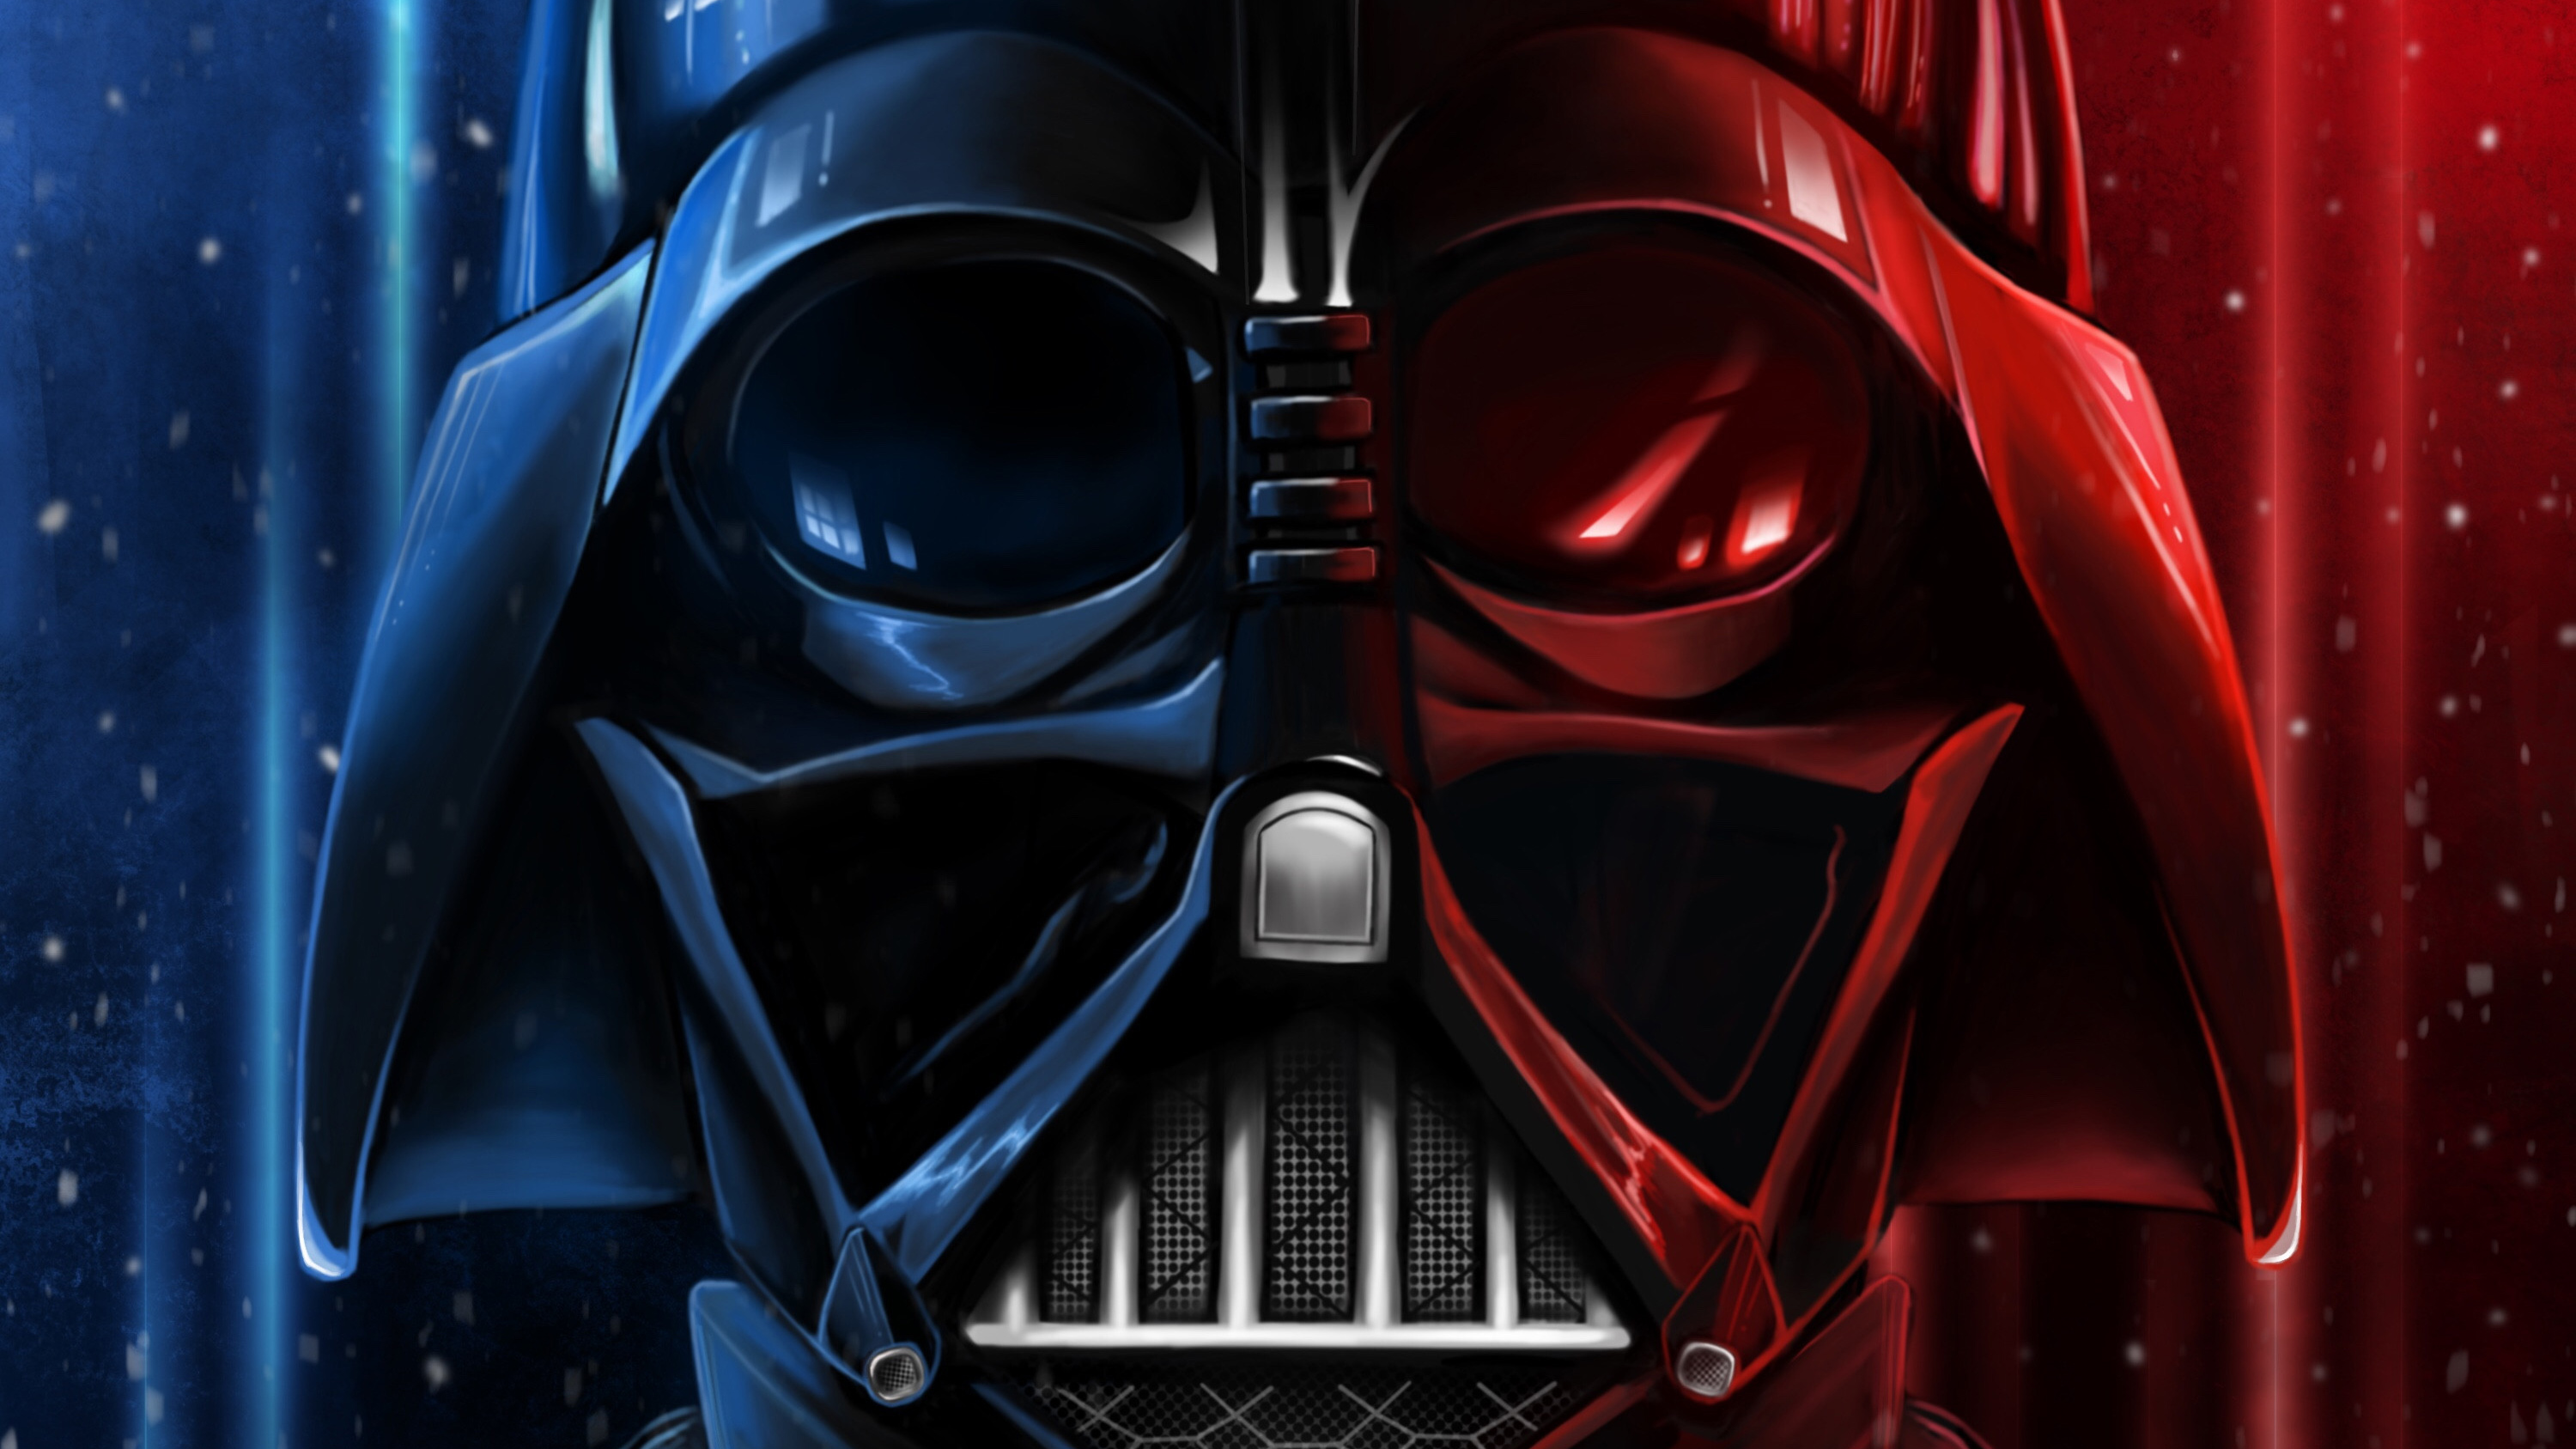 Wallpaper Darth Vader with blue and red lights